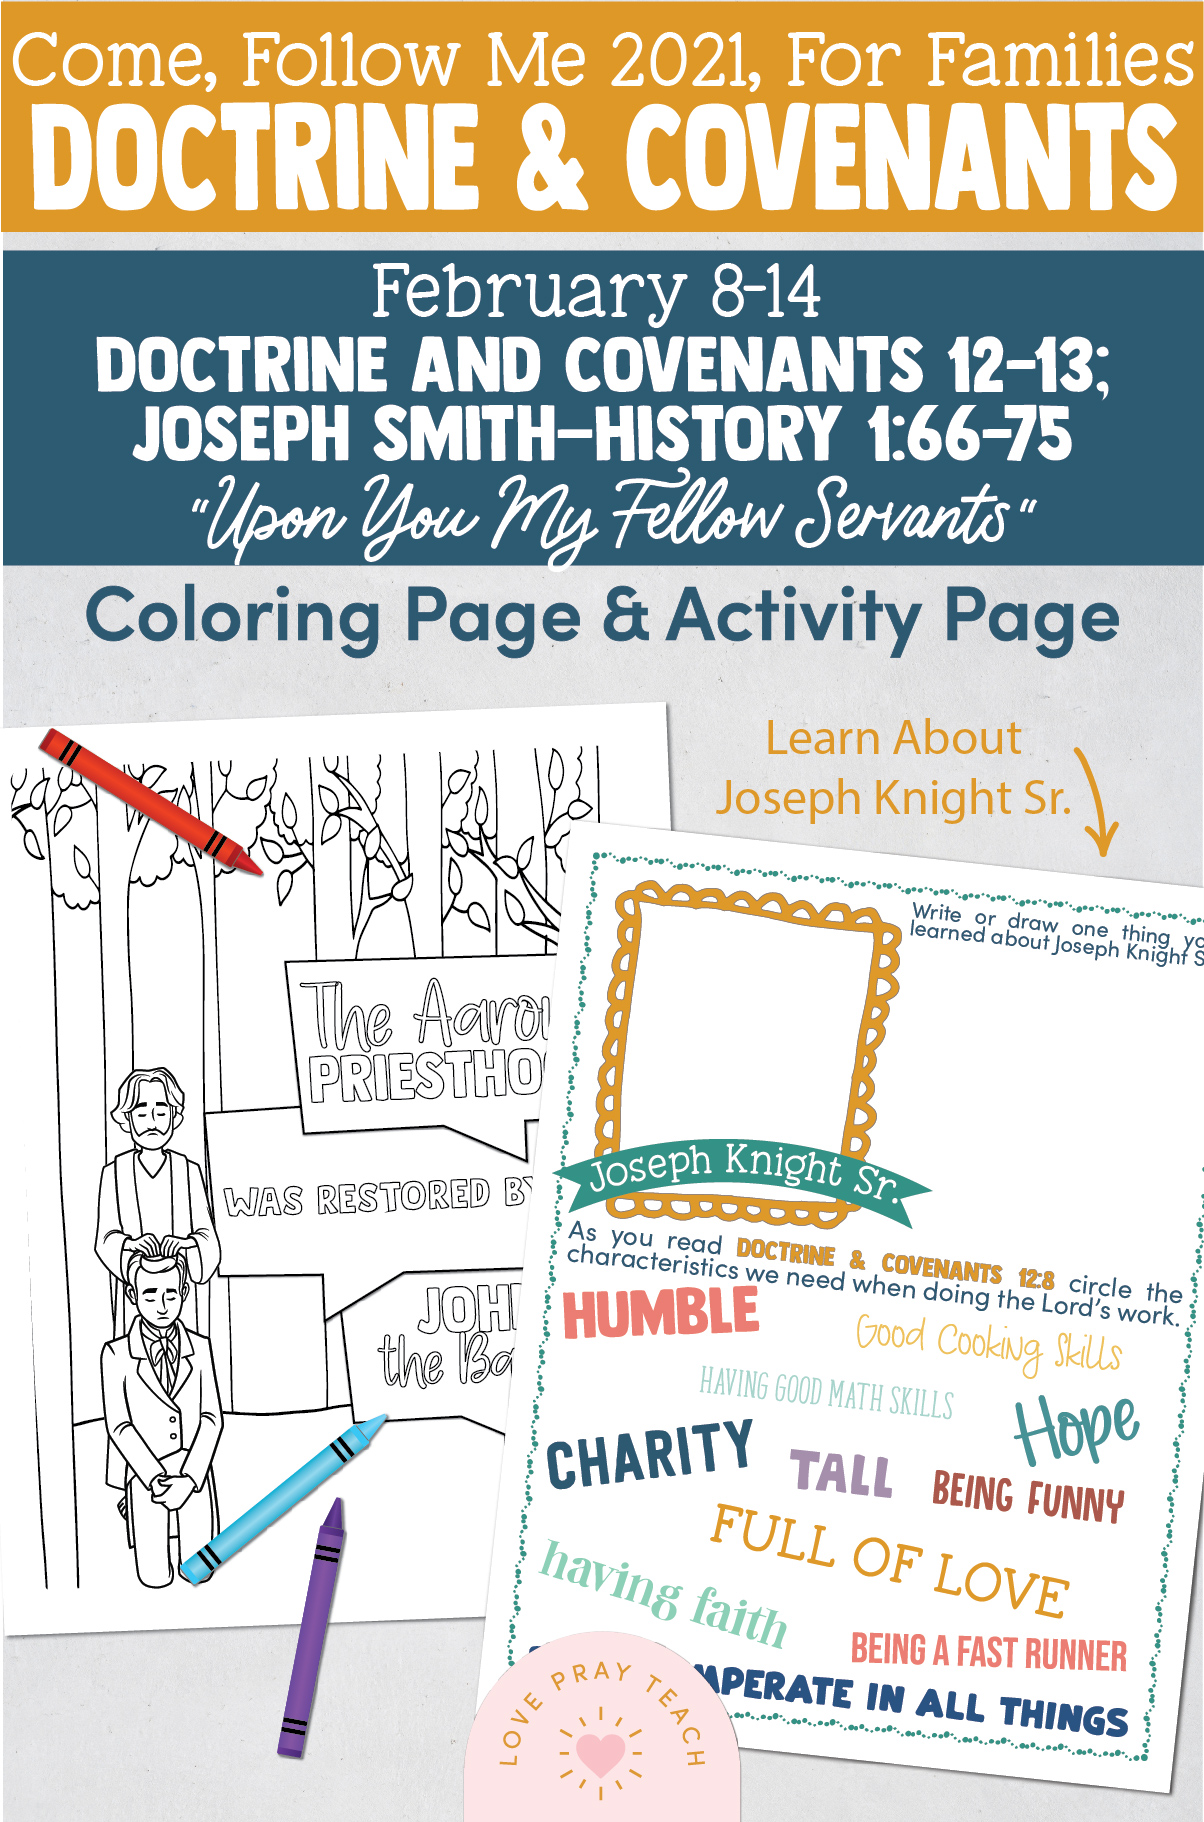 Come, Follow Me—For Individuals and Families: Doctrine And Covenants 2021, February Week 2: February 8-14, Doctrine and Covenants 12–13; Joseph Smith—History 1:66–75,